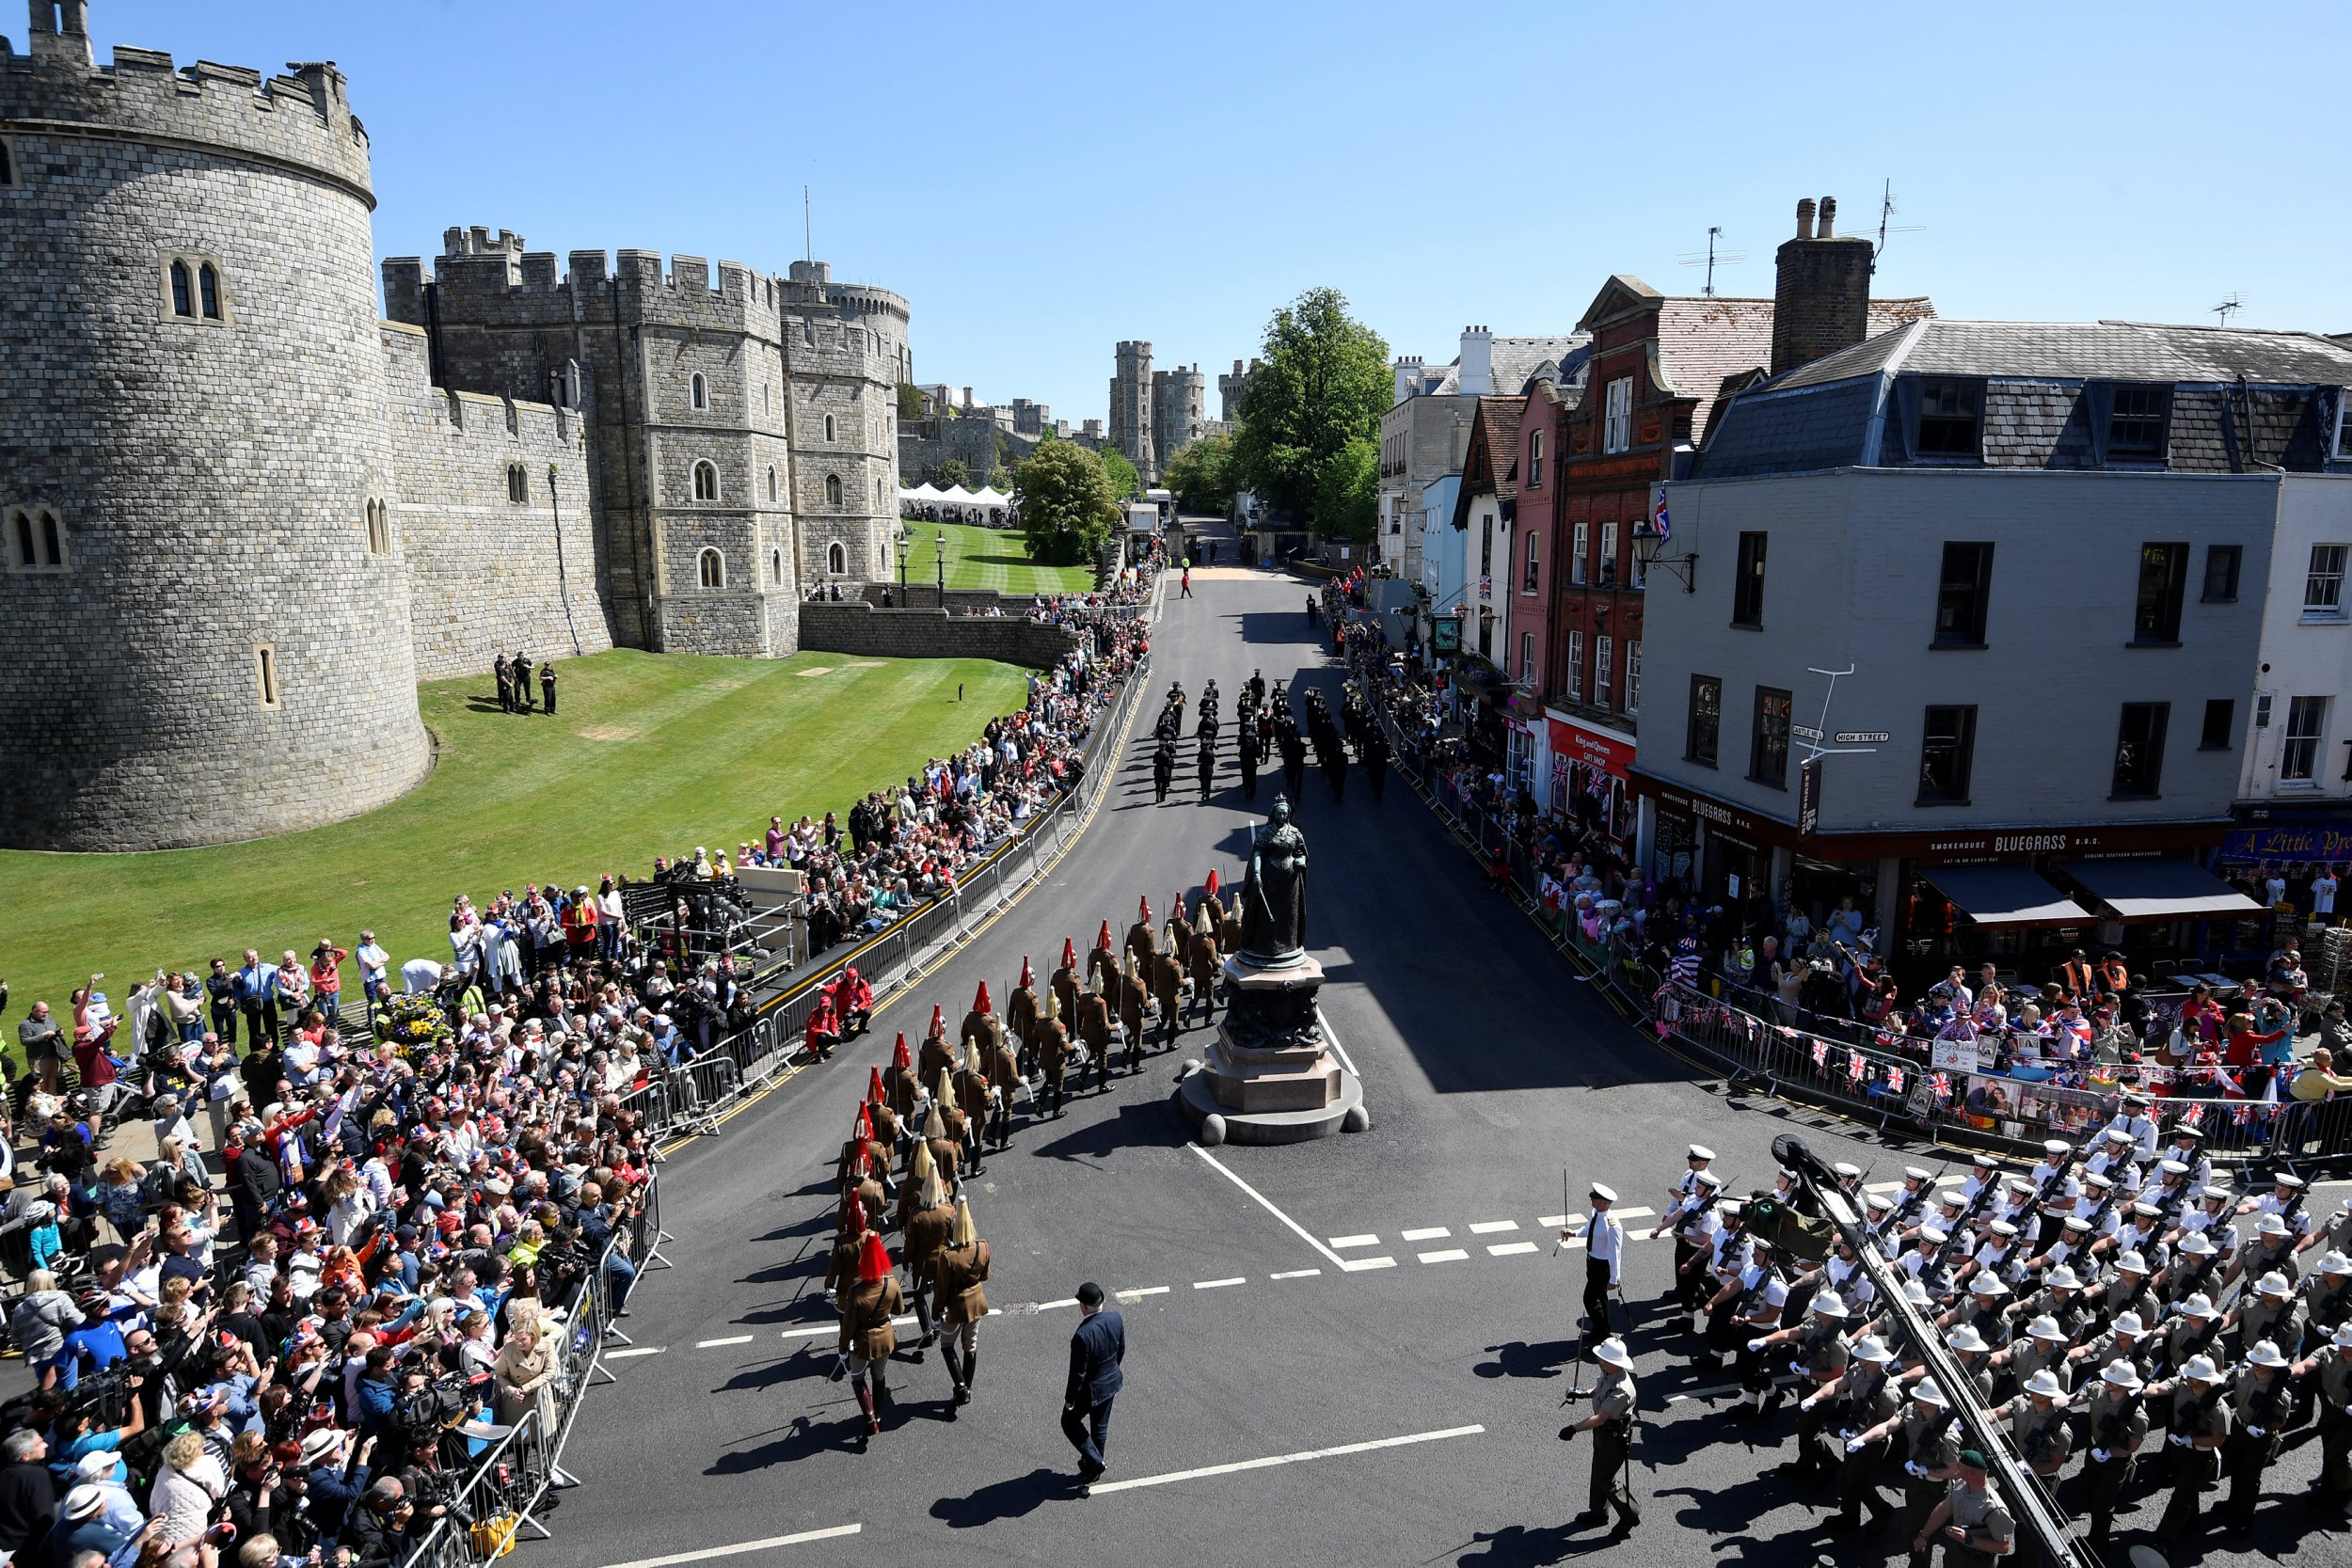 Police officers and members of the public watch as military personnel rehearse their part in the procession, for Britain's Prince Harry and Meghan Markle's wedding, through the streets of Windsor, Britain, May 17, 2018. REUTERS/Toby Melville